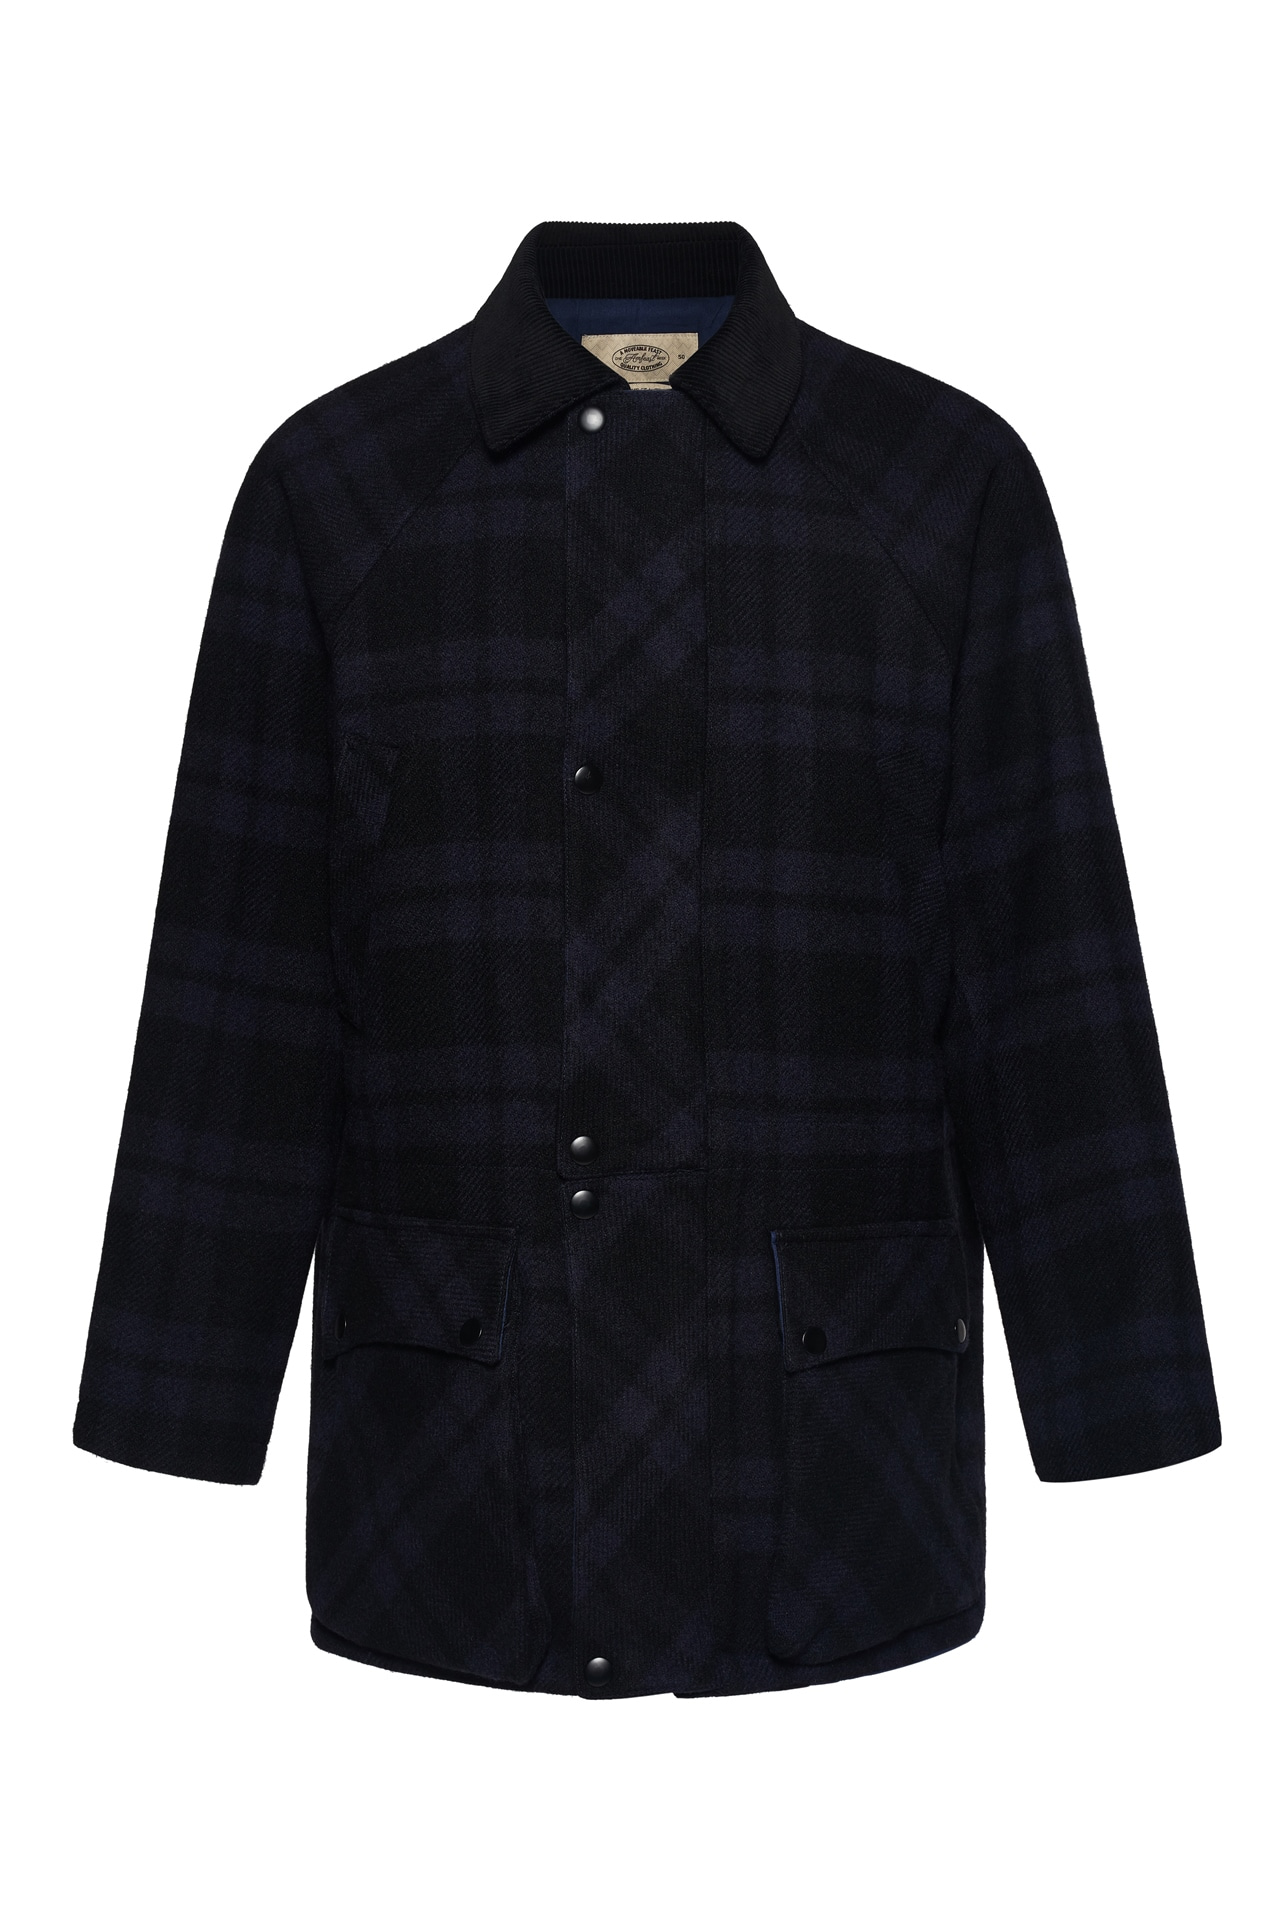 NAVY TARTAN SIGNATURE CITY HALF COATLovat millAMFEAST(암피스트)